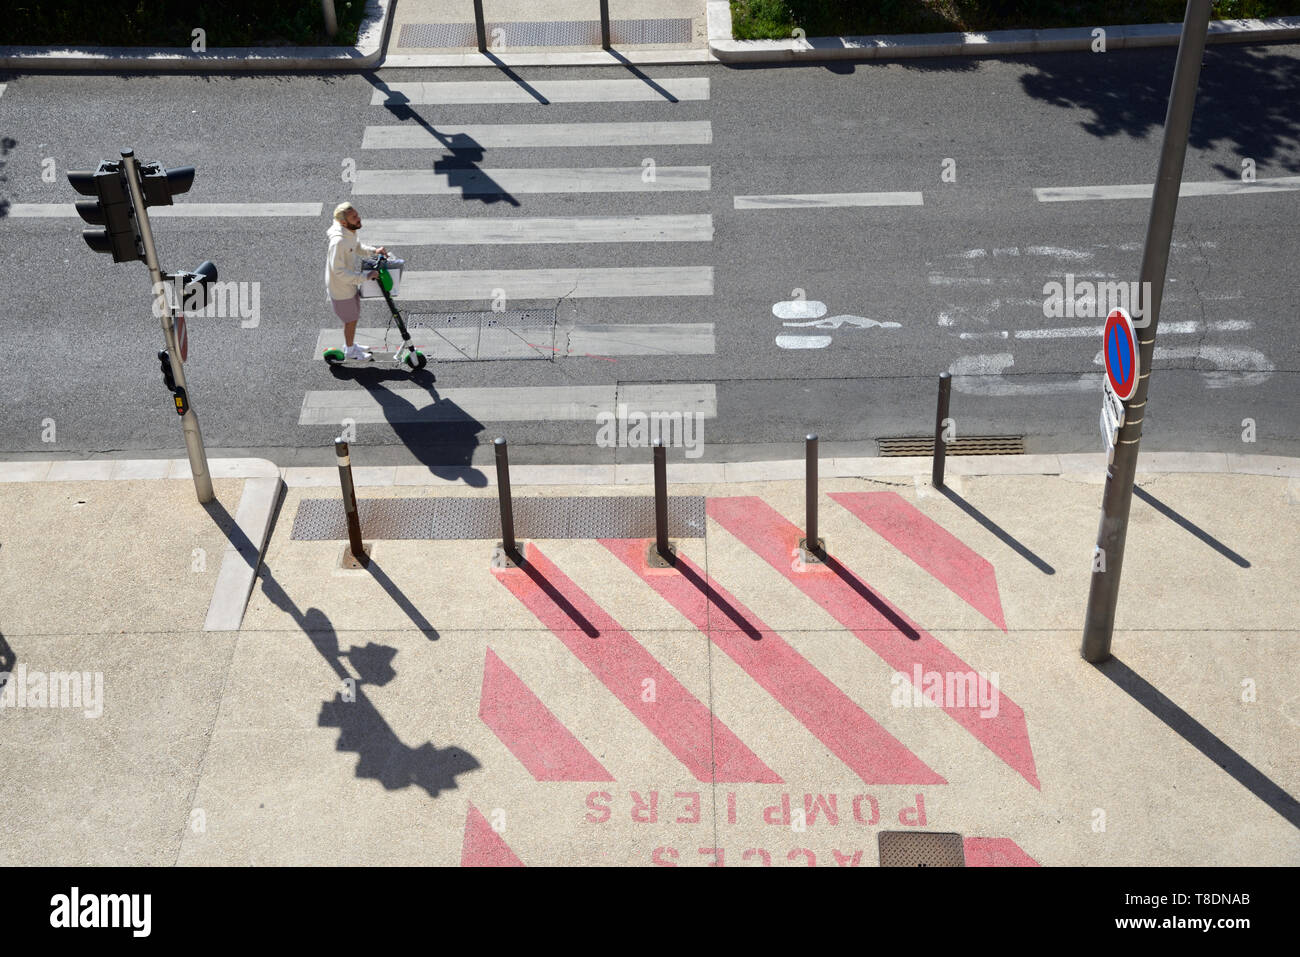 Rider on Stand-Up Scooter or Motorised Kick Scooter Riding in Cycle Lane or Bike Lane with Road Markings & Pedestrian Crossing Marseille France - Stock Image